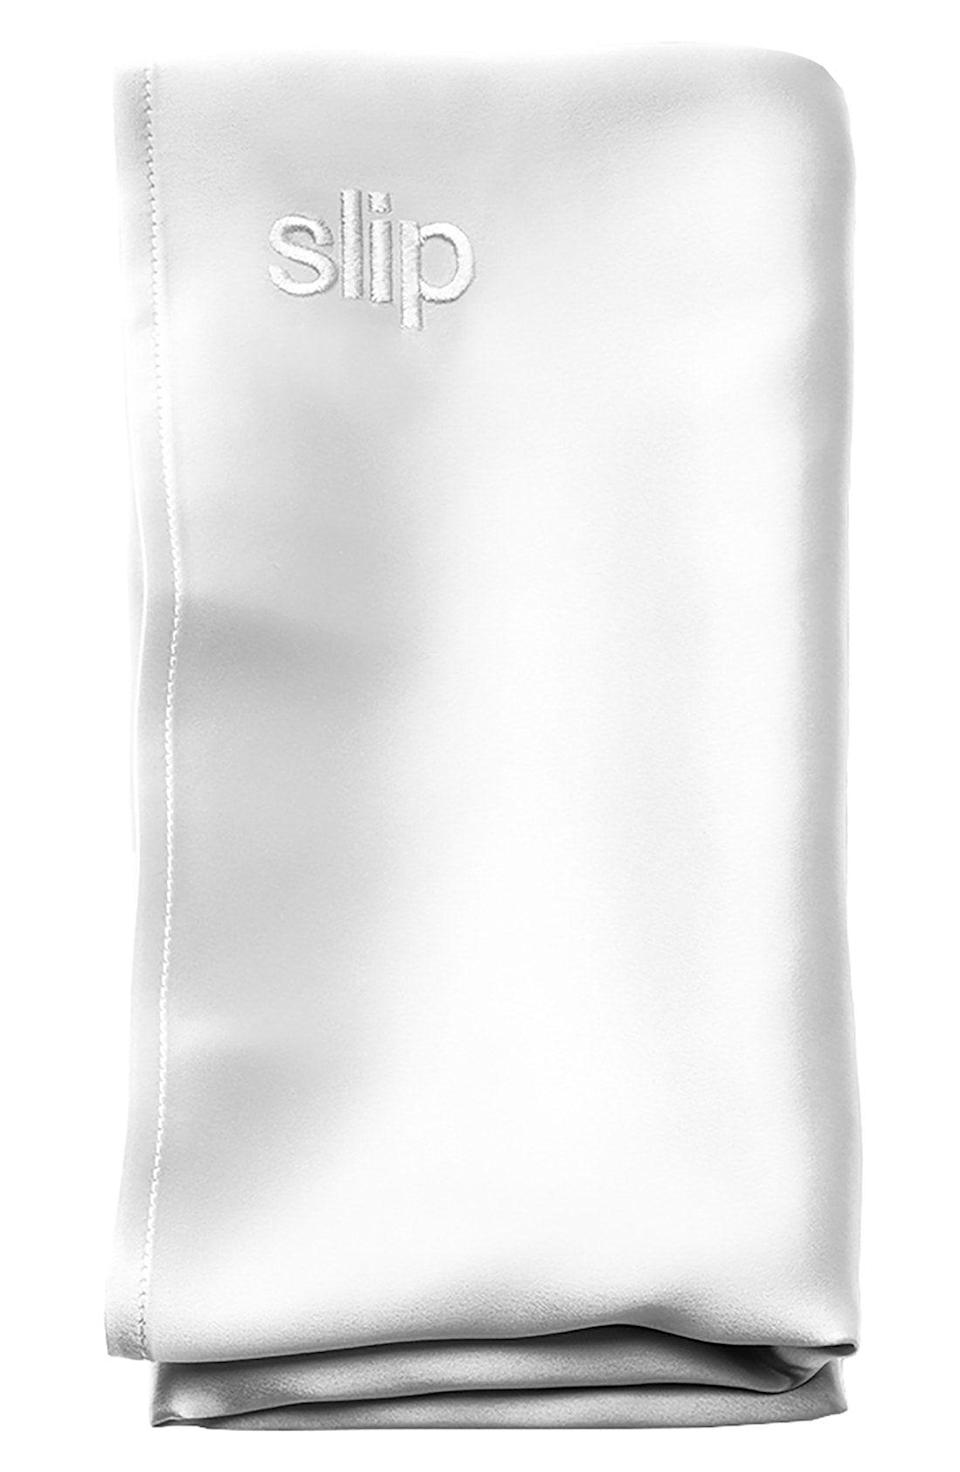 """<p><strong>SLIP FOR BEAUTY SLEEP</strong></p><p>nordstrom.com</p><p><strong>$105.00</strong></p><p><a href=""""https://go.redirectingat.com?id=74968X1596630&url=https%3A%2F%2Fwww.nordstrom.com%2Fs%2Fslip-pure-silk-pillowcase%2F4186794&sref=https%3A%2F%2Fwww.cosmopolitan.com%2Fstyle-beauty%2Fbeauty%2Fg4577%2Fvalentines-day-gifts-to-give-yourself%2F"""" rel=""""nofollow noopener"""" target=""""_blank"""" data-ylk=""""slk:Shop Now"""" class=""""link rapid-noclick-resp"""">Shop Now</a></p><p>If you know all about the <a href=""""https://www.cosmopolitan.com/style-beauty/beauty/how-to/a55271/best-silk-satin-pillowcases/"""" rel=""""nofollow noopener"""" target=""""_blank"""" data-ylk=""""slk:benefits of sleeping on a silk pillowcase"""" class=""""link rapid-noclick-resp"""">benefits of sleeping on a silk pillowcase</a> (<strong>um, smoother, shinier, less-damaged hair</strong>) but haven't made the purchase yet, what better time to do so than now? Waking up with soft, knot-free hair is worth the price. Trust.</p>"""